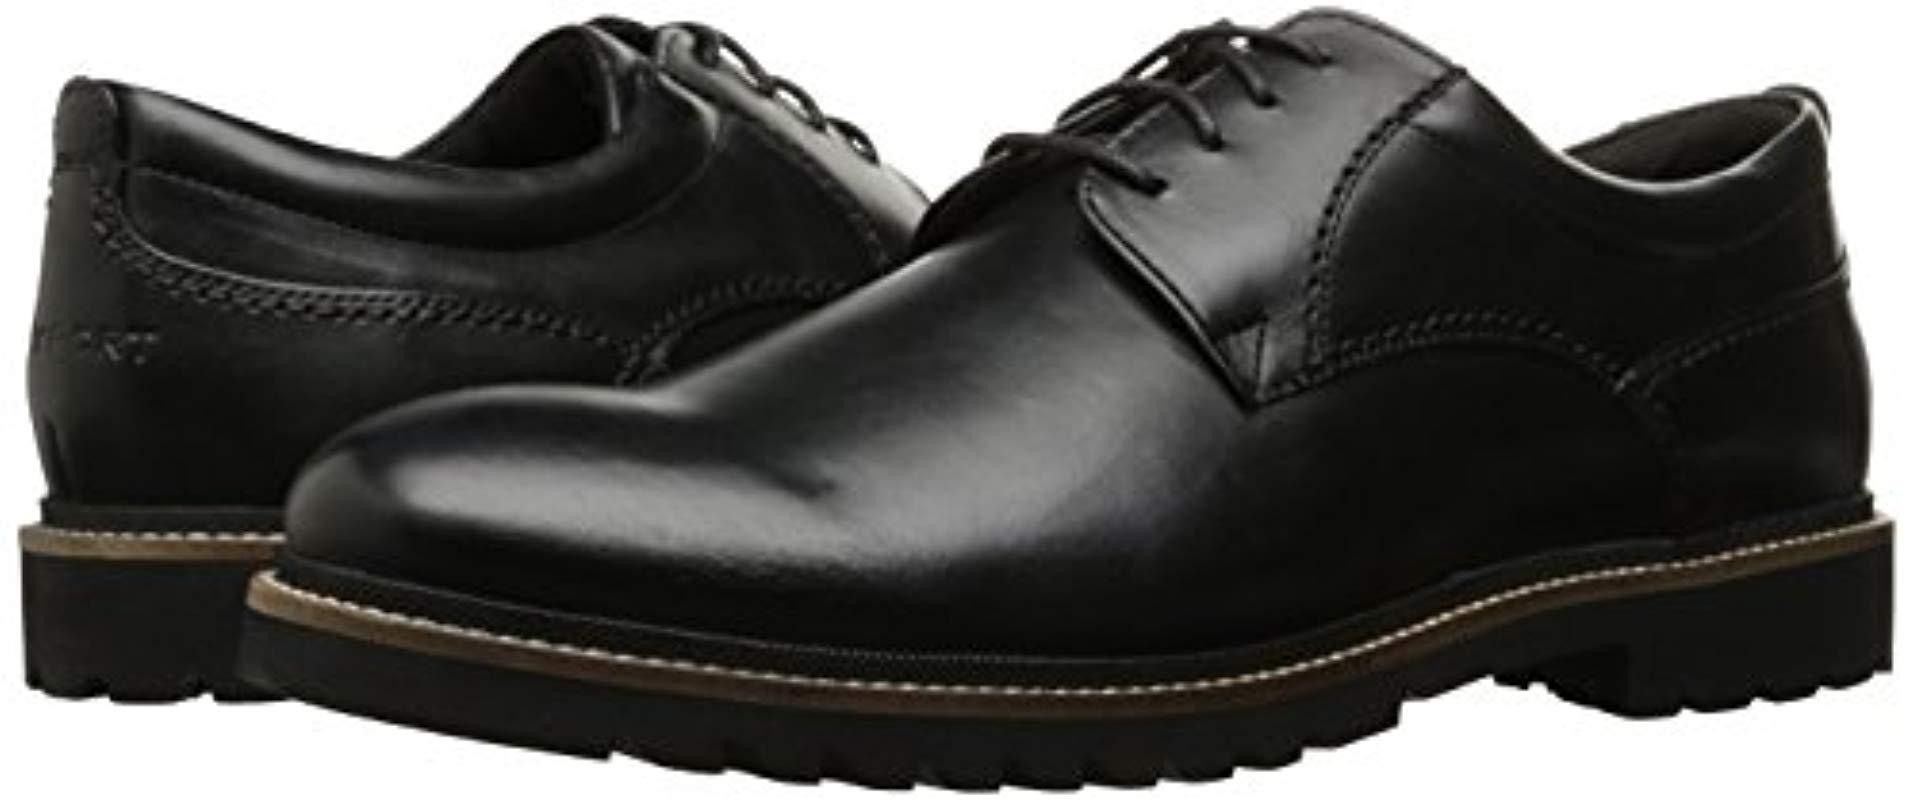 894674e5ccd92 Rockport Marshall Pt Oxford Shoes in Black for Men - Save 21% - Lyst